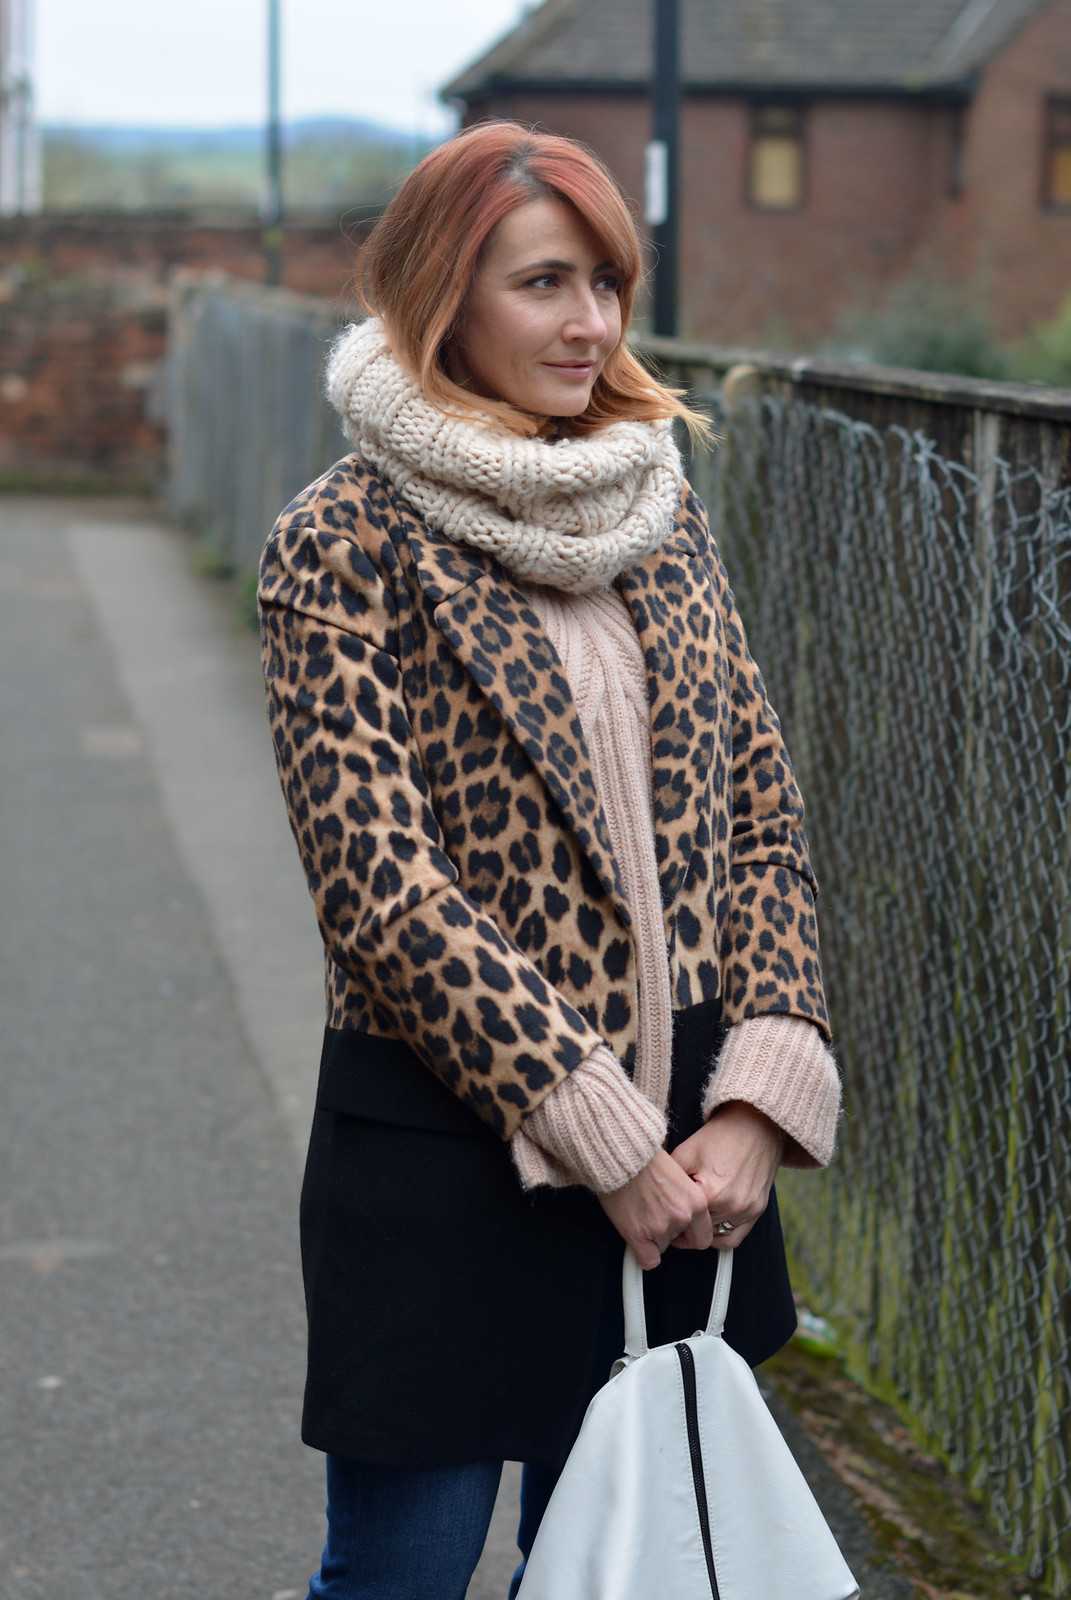 Winter style: Two tone leopard/black coat, blush knit | Not Dressed As Lamb